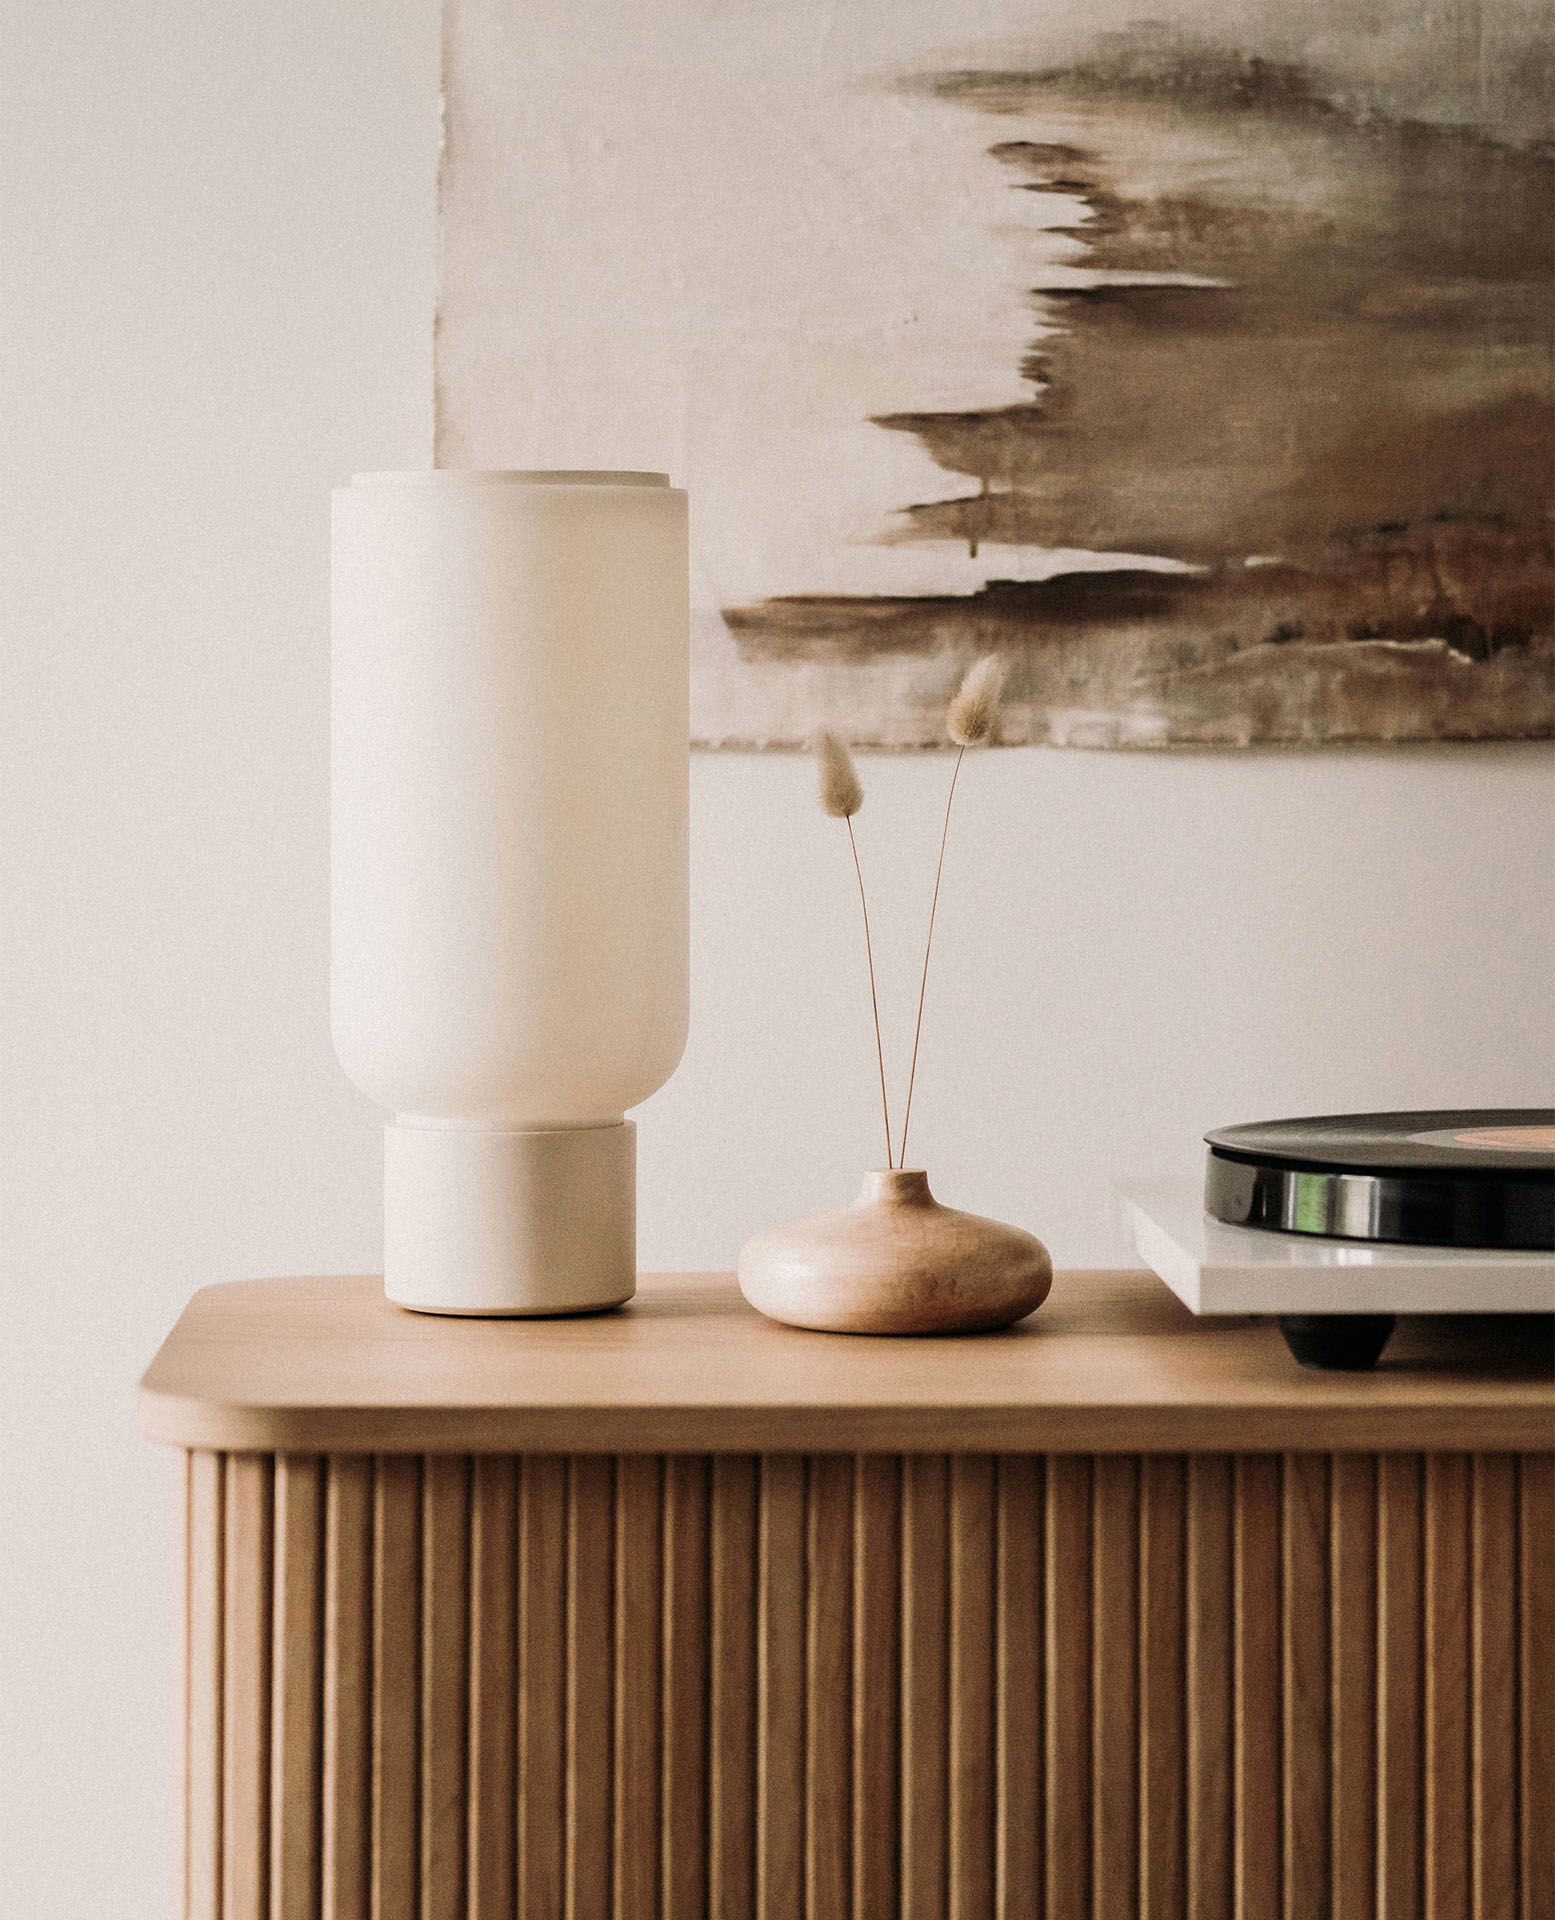 Arpeggio Table Light for Gantri, placed on a minimal sideboard